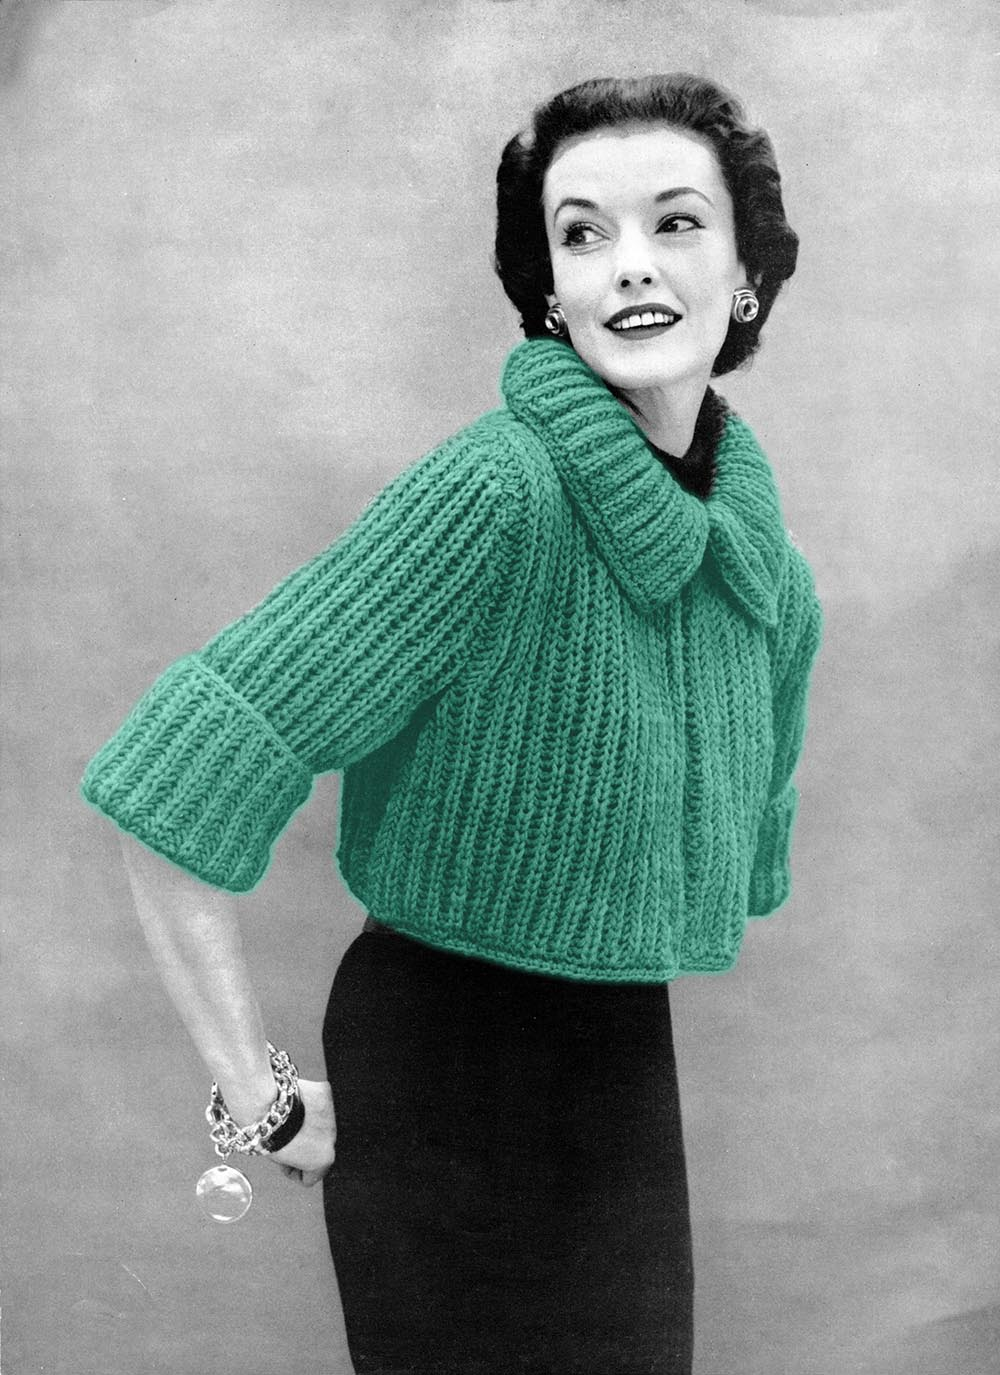 Knitting Patterns Free Vintage : Musings from Marilyn   Fab 50s Vintage Bolero Sweater ...